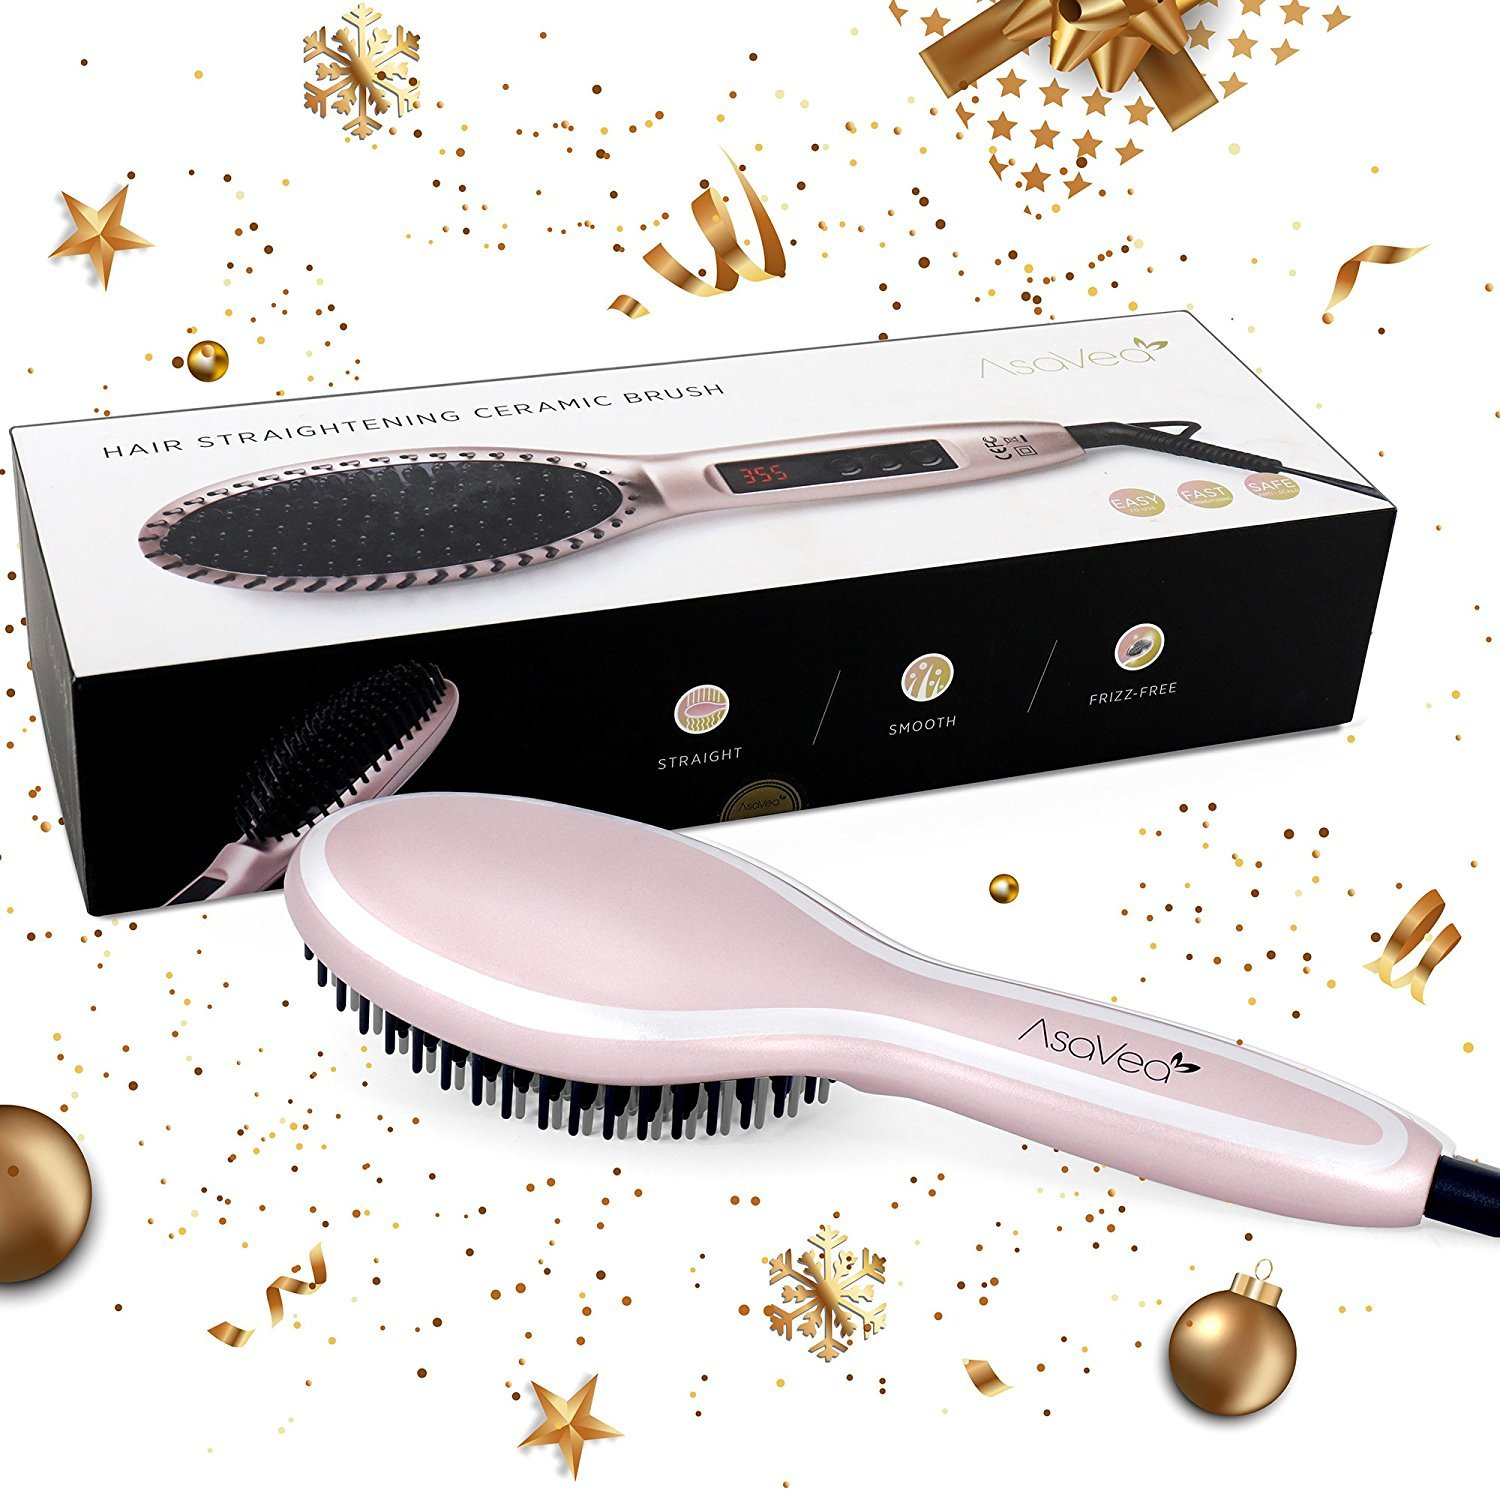 AsaVea Hair Straightener Brush 3.0: MCH Heating Technology and Auto Temperature Lock, Anti-Scald Design - The Best Gift Choice (Rose Gold) by AsaVea (Image #3)